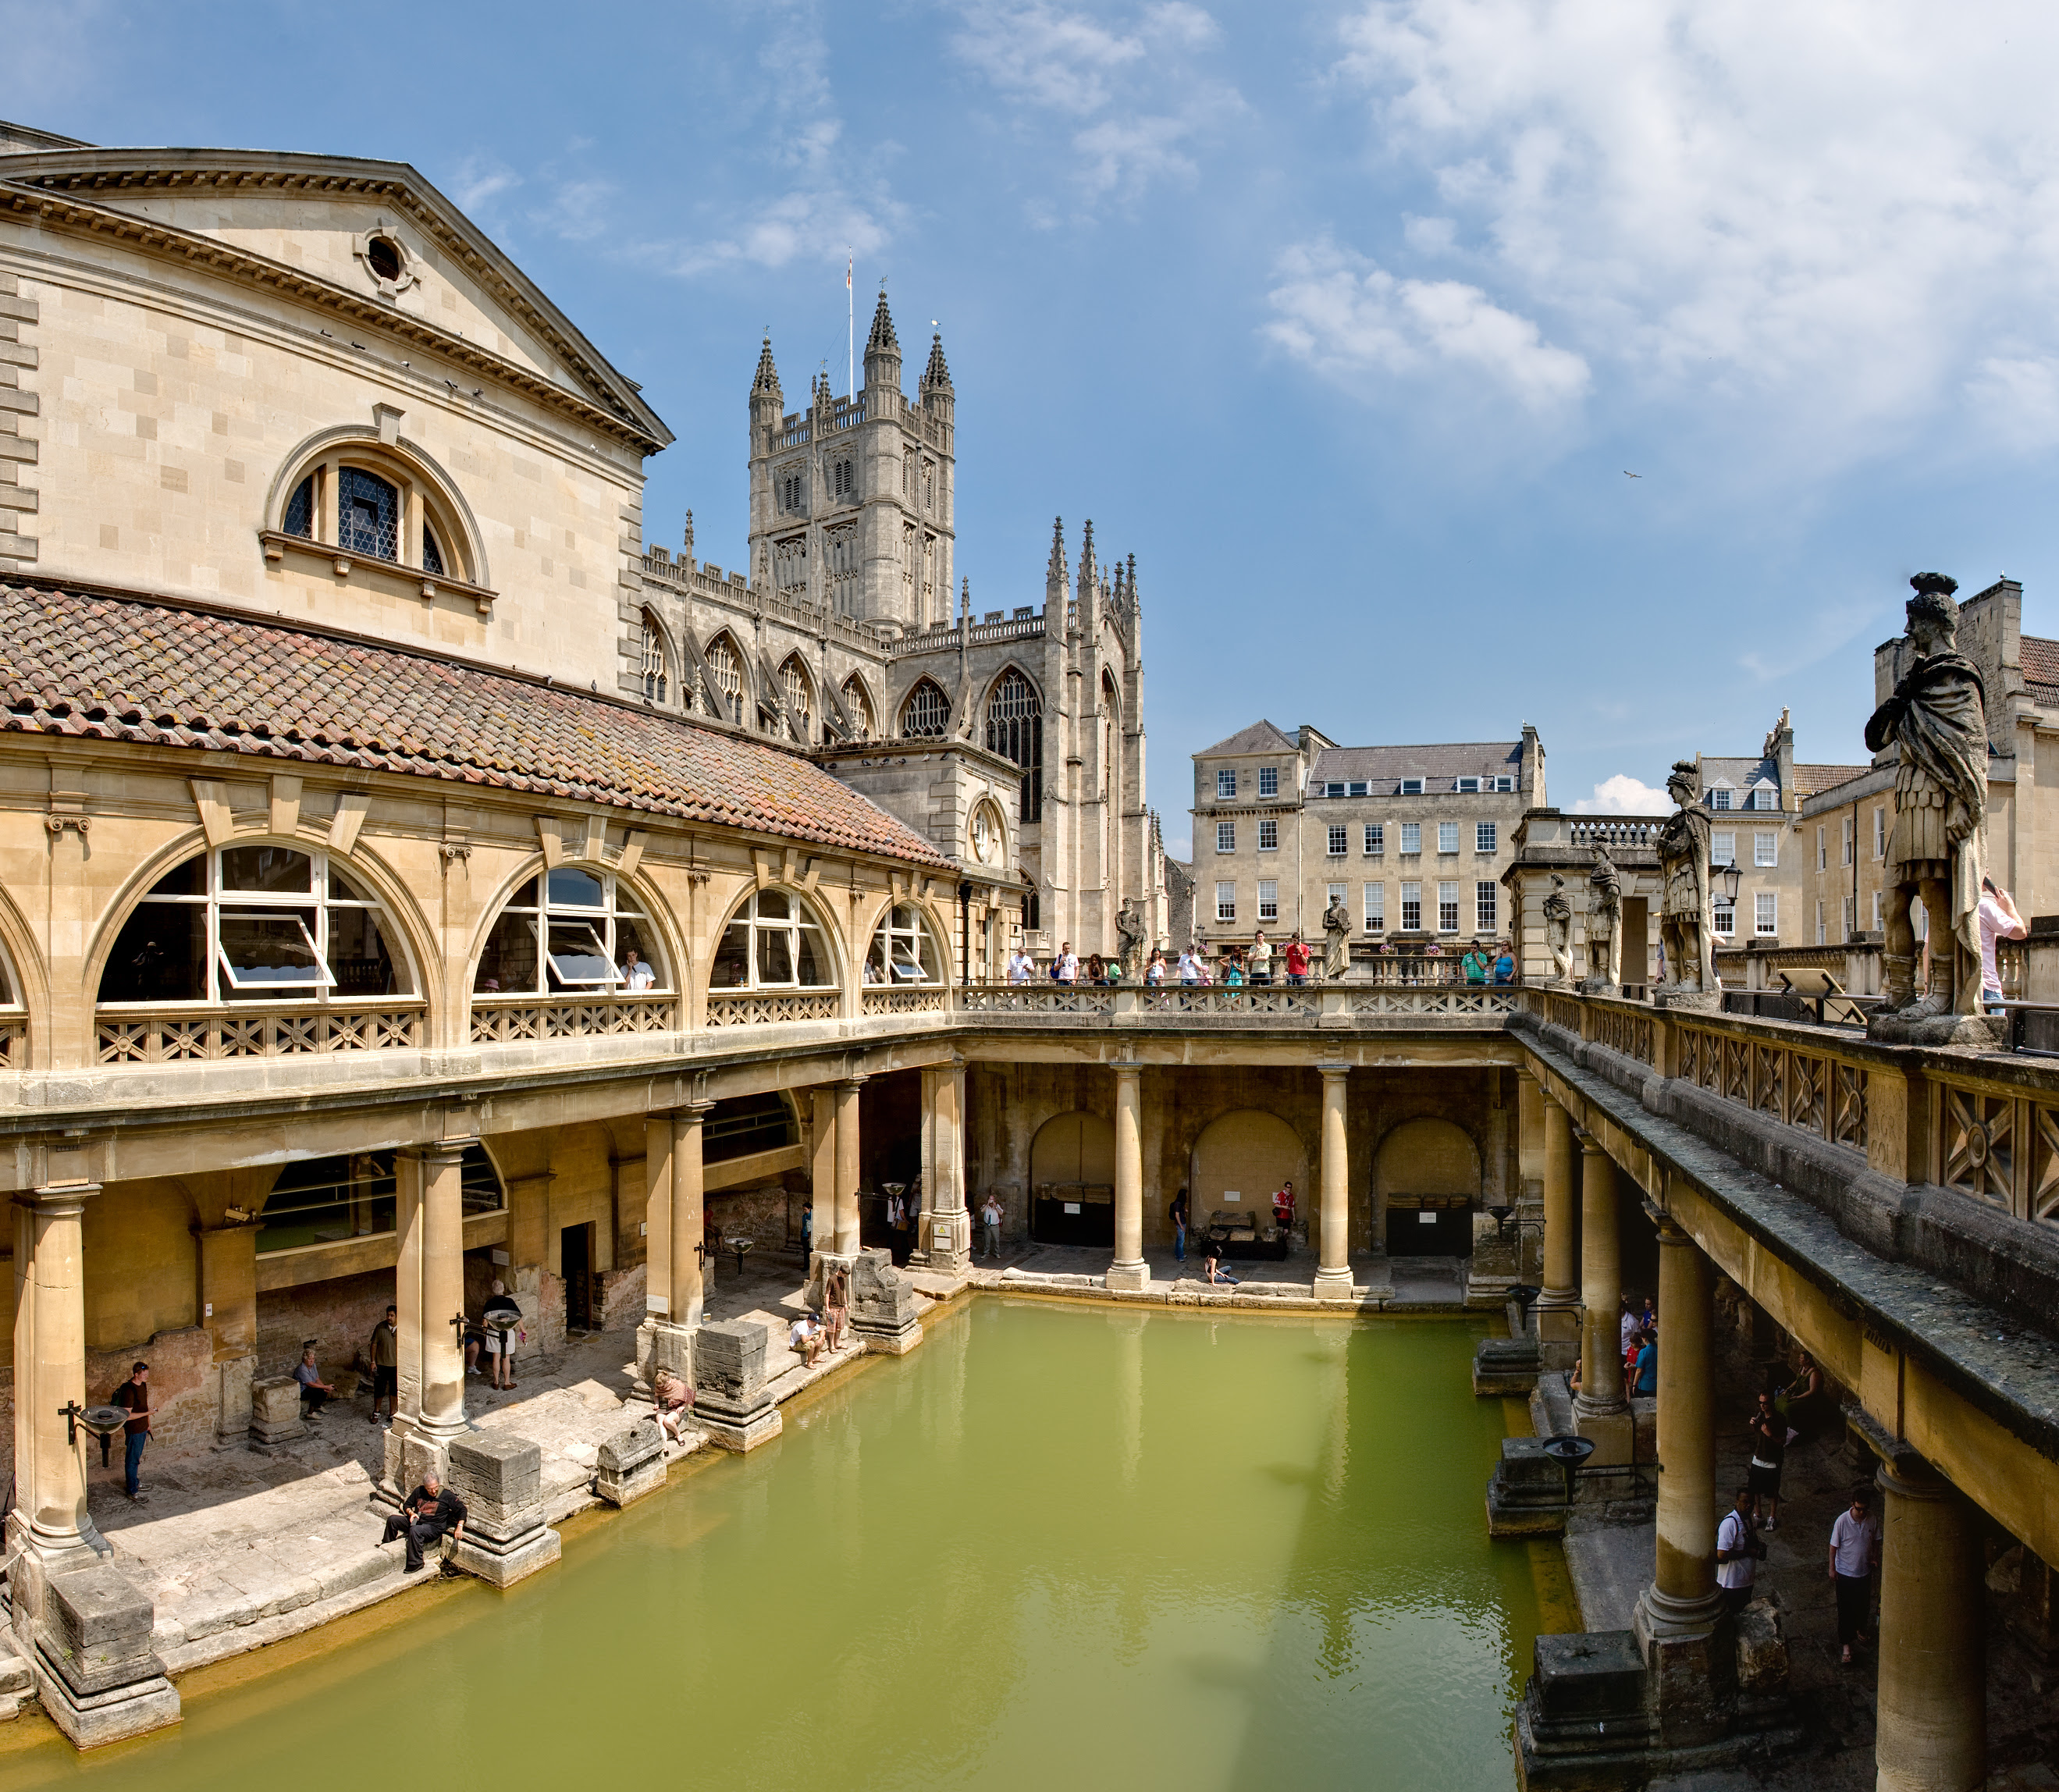 Roman_Baths_in_Bath_Spa%2C_England_ _July_2006